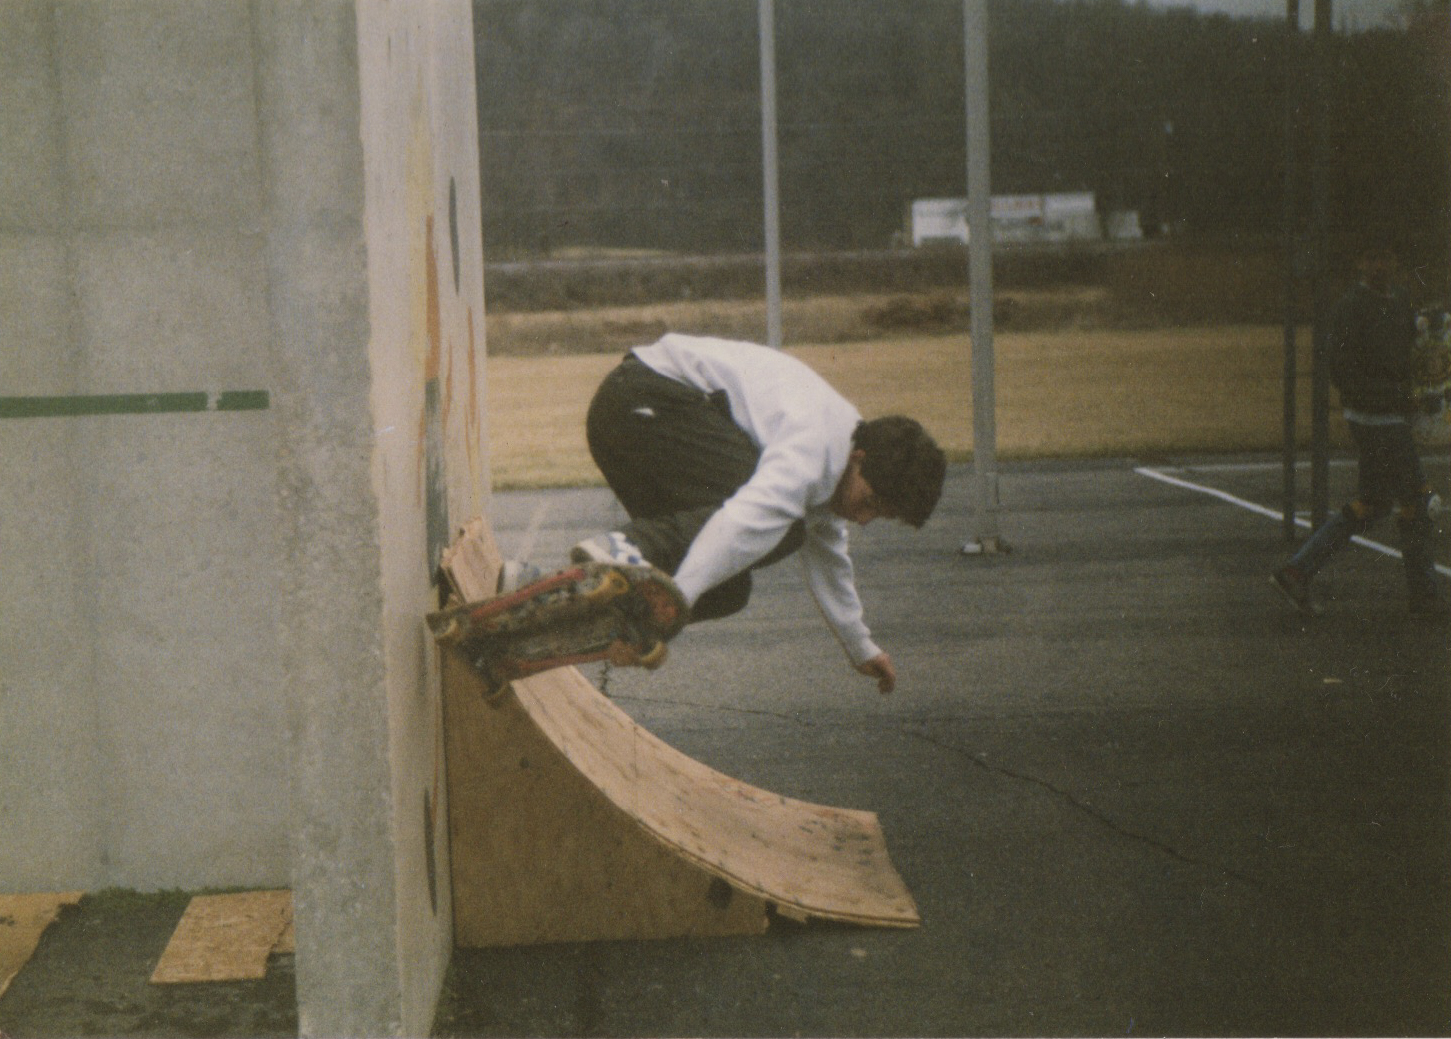 Craig Dransfield airs off one of the wooden ramps on the handball court.  Photo Courtesy of Craig Dransfield